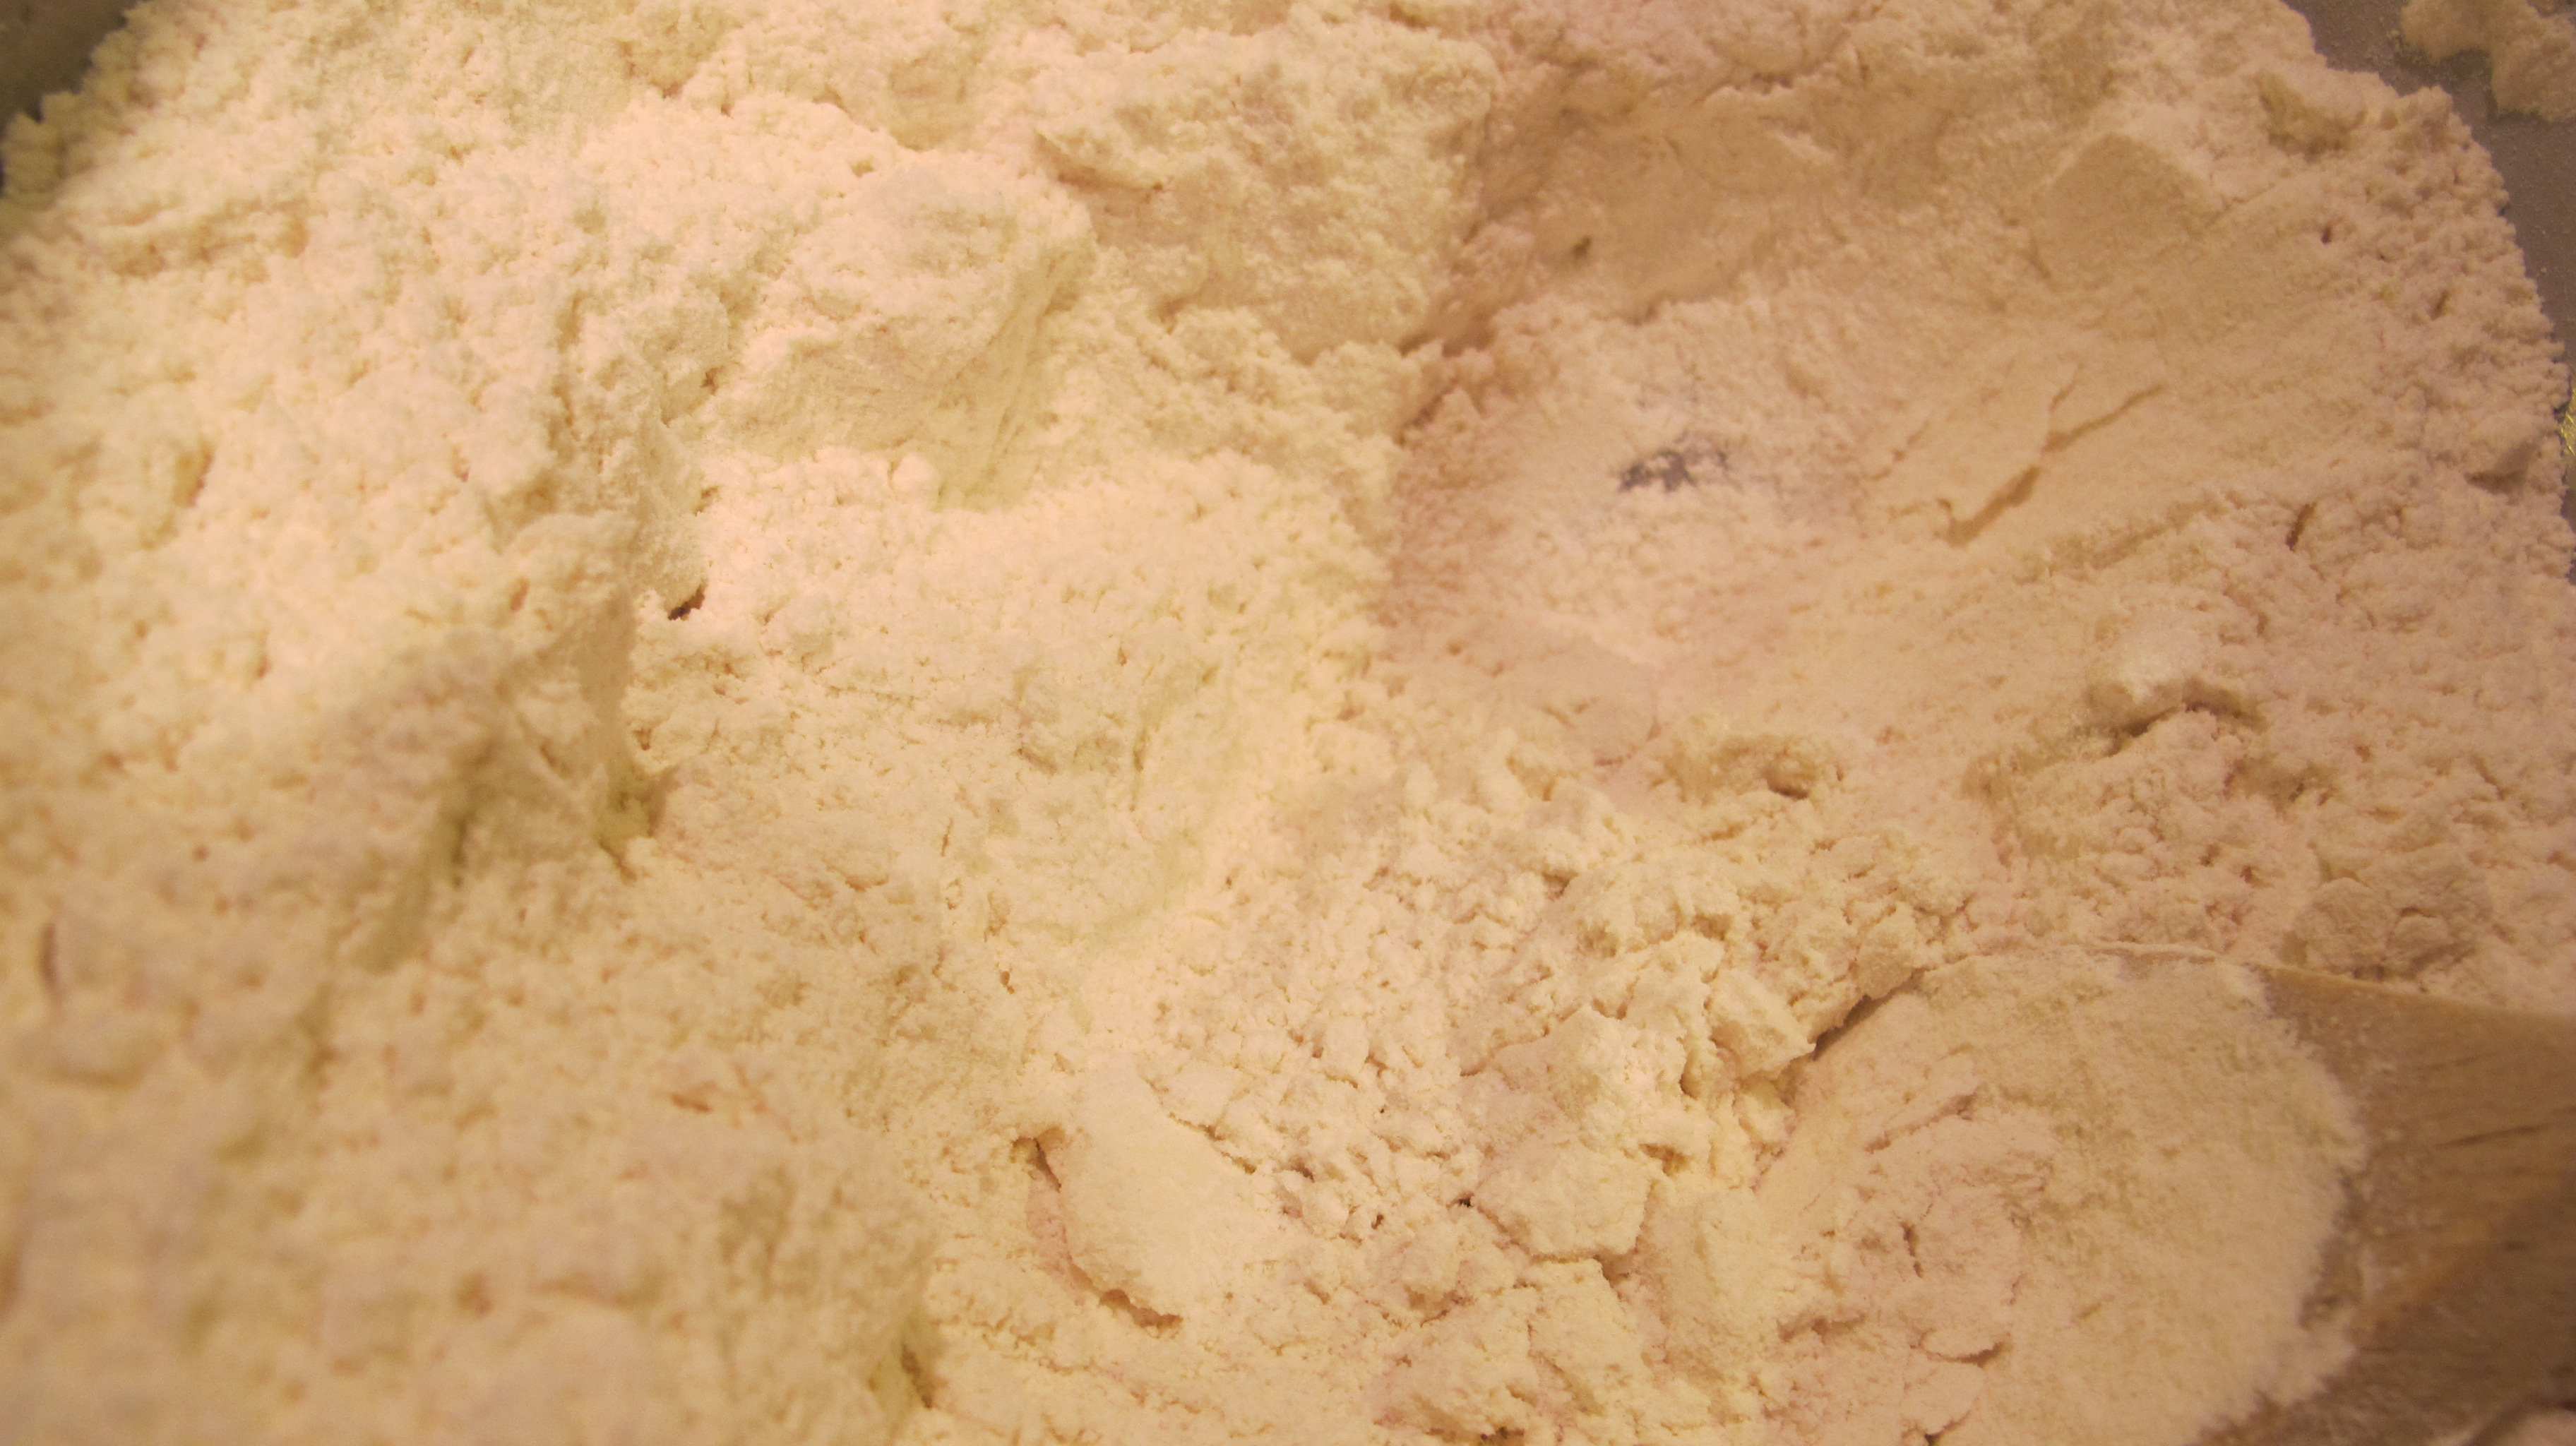 The dry mixture contains small crumbs from the butter.